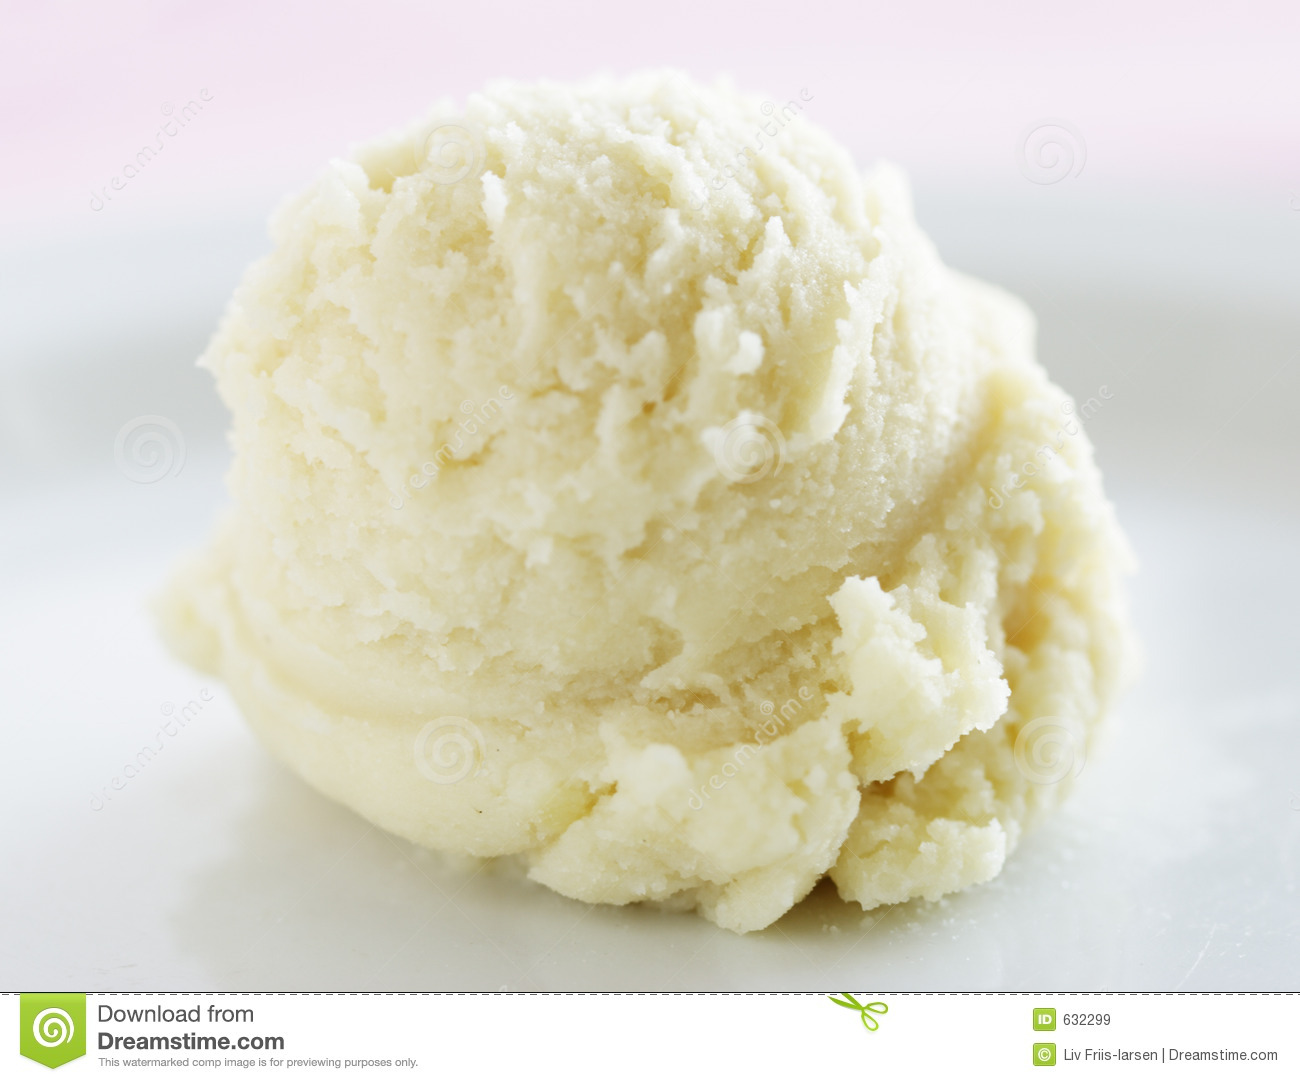 Vanilla Ice Cream Royalty Free Stock Images - Image: 632299